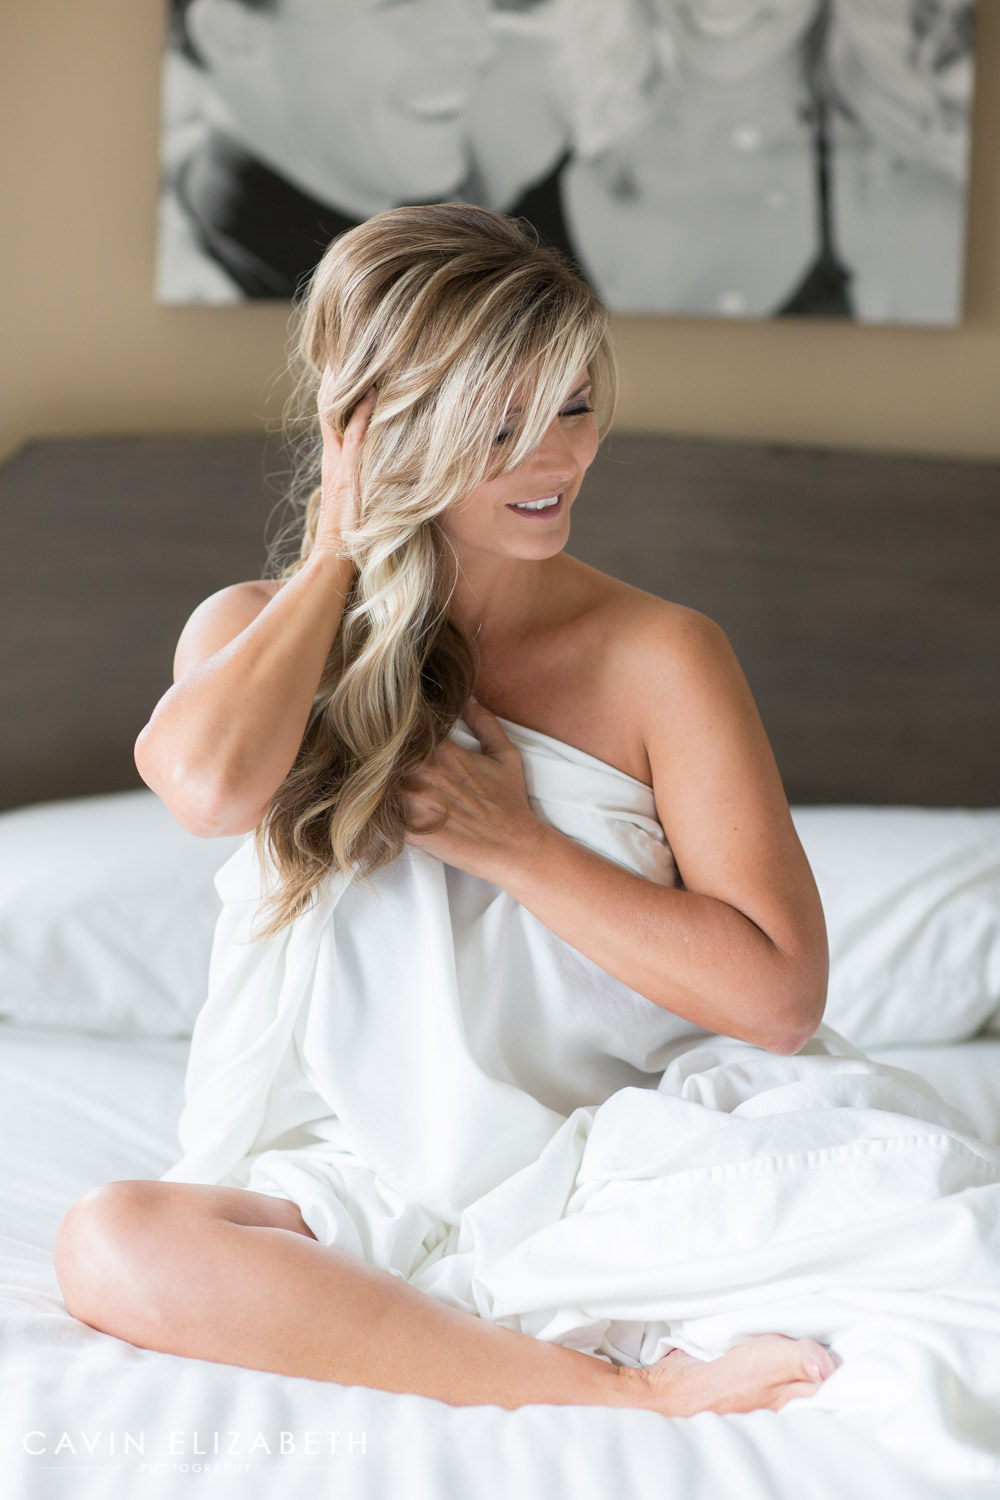 Beautiful boudoir photo ideas and posing on the bed  Cavin Elizabeth Photography  boudoir photographer in. Boudoir Photography Session in San Diego